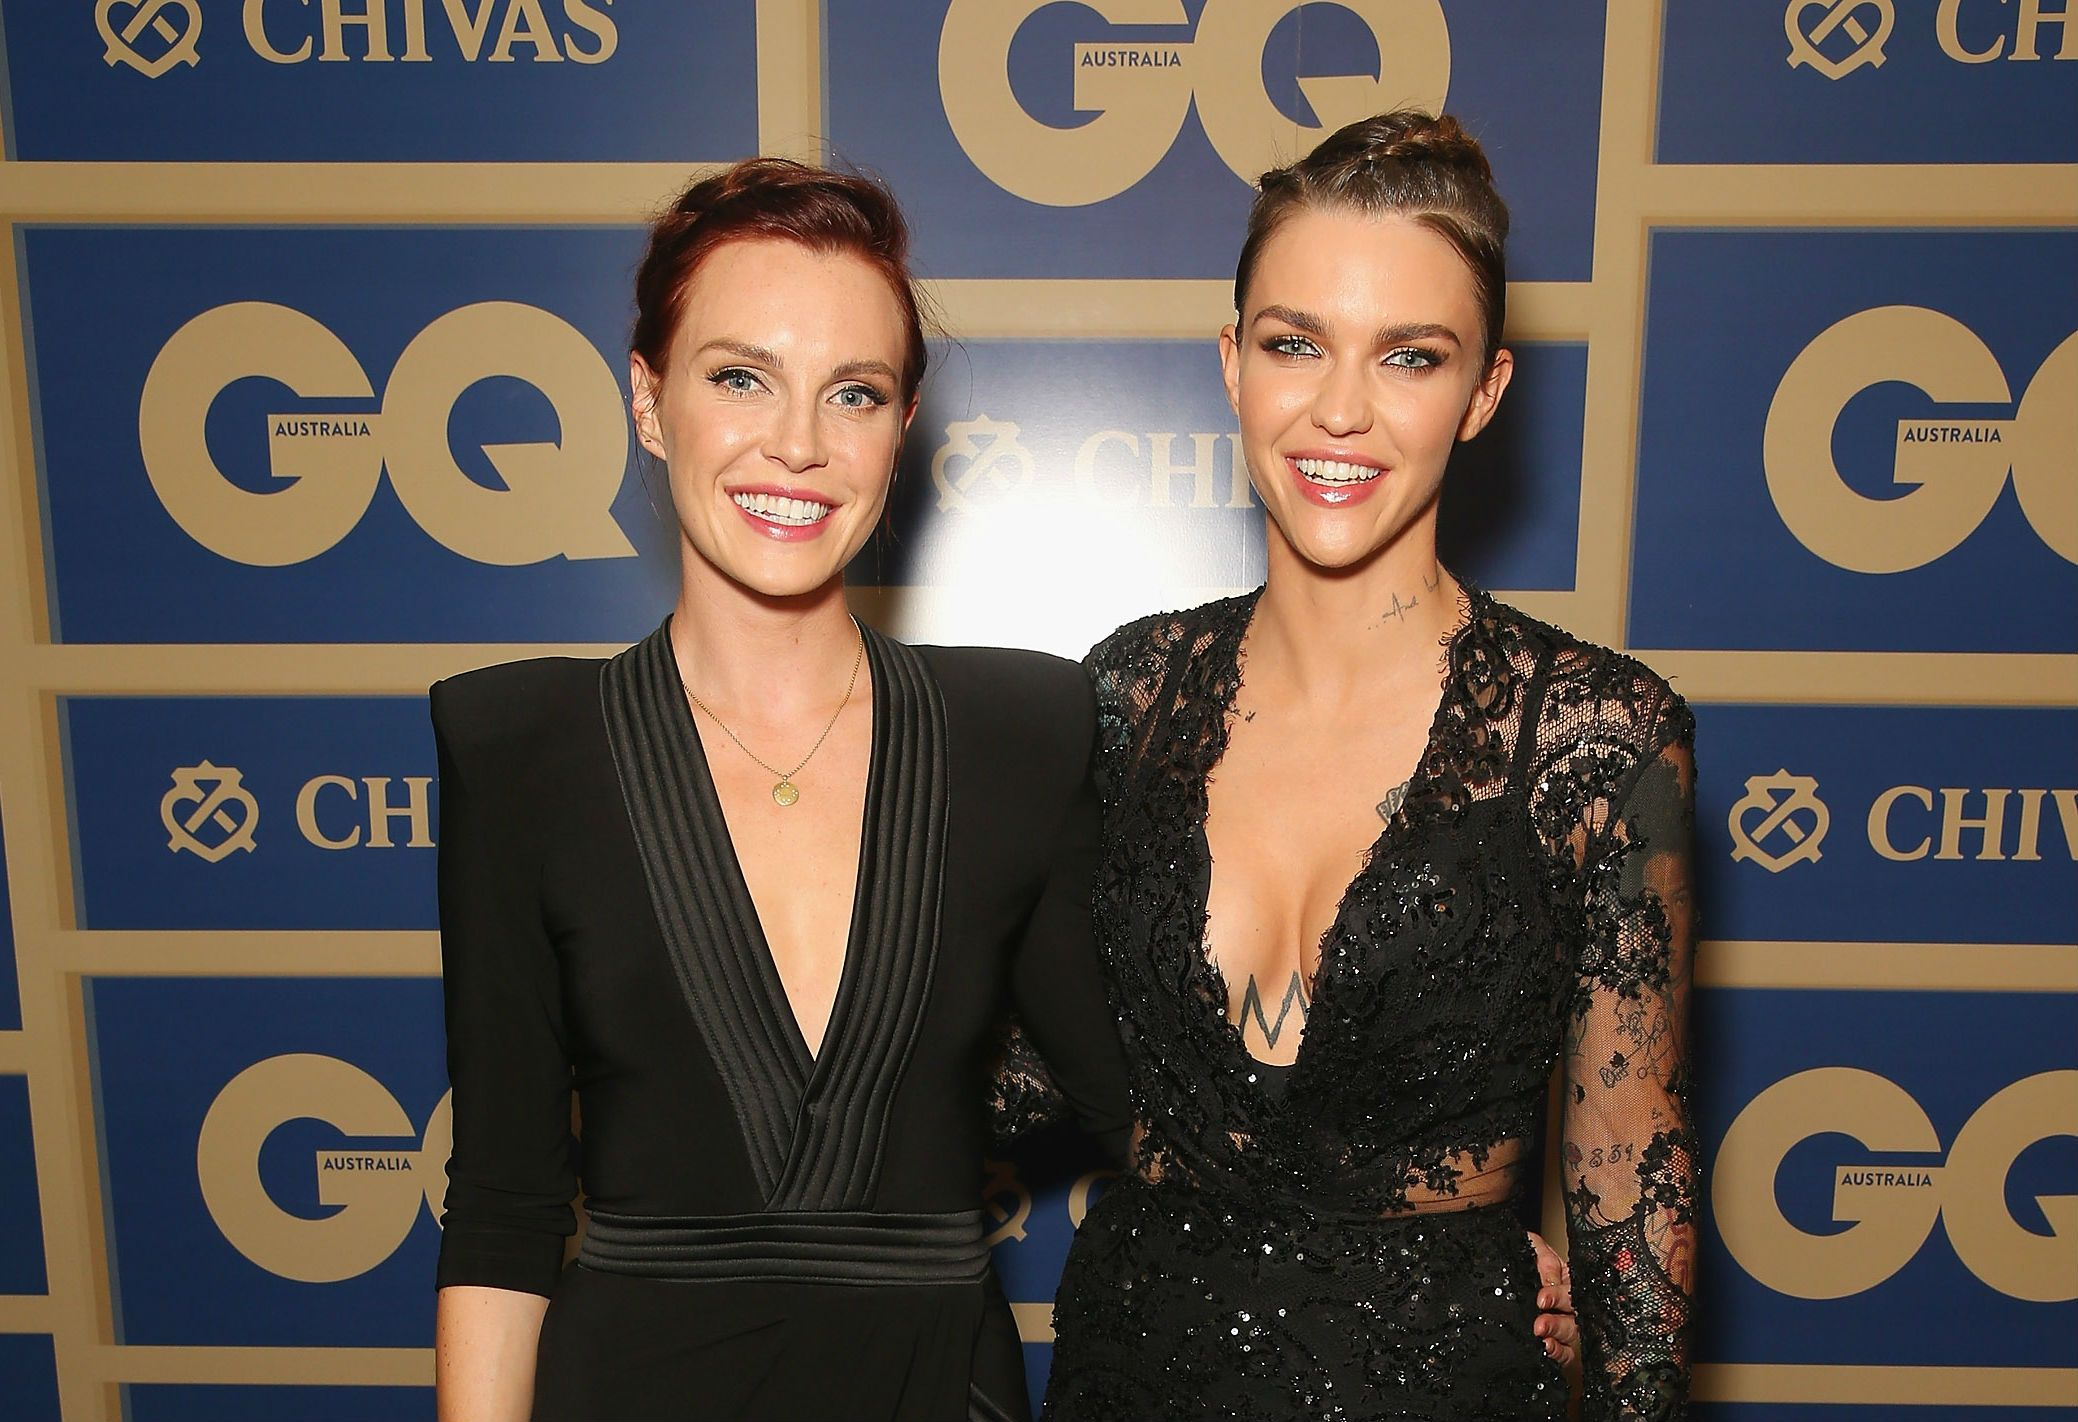 Yes Love Is Dead Ruby Rose And Phoebe Dahl Broke Up